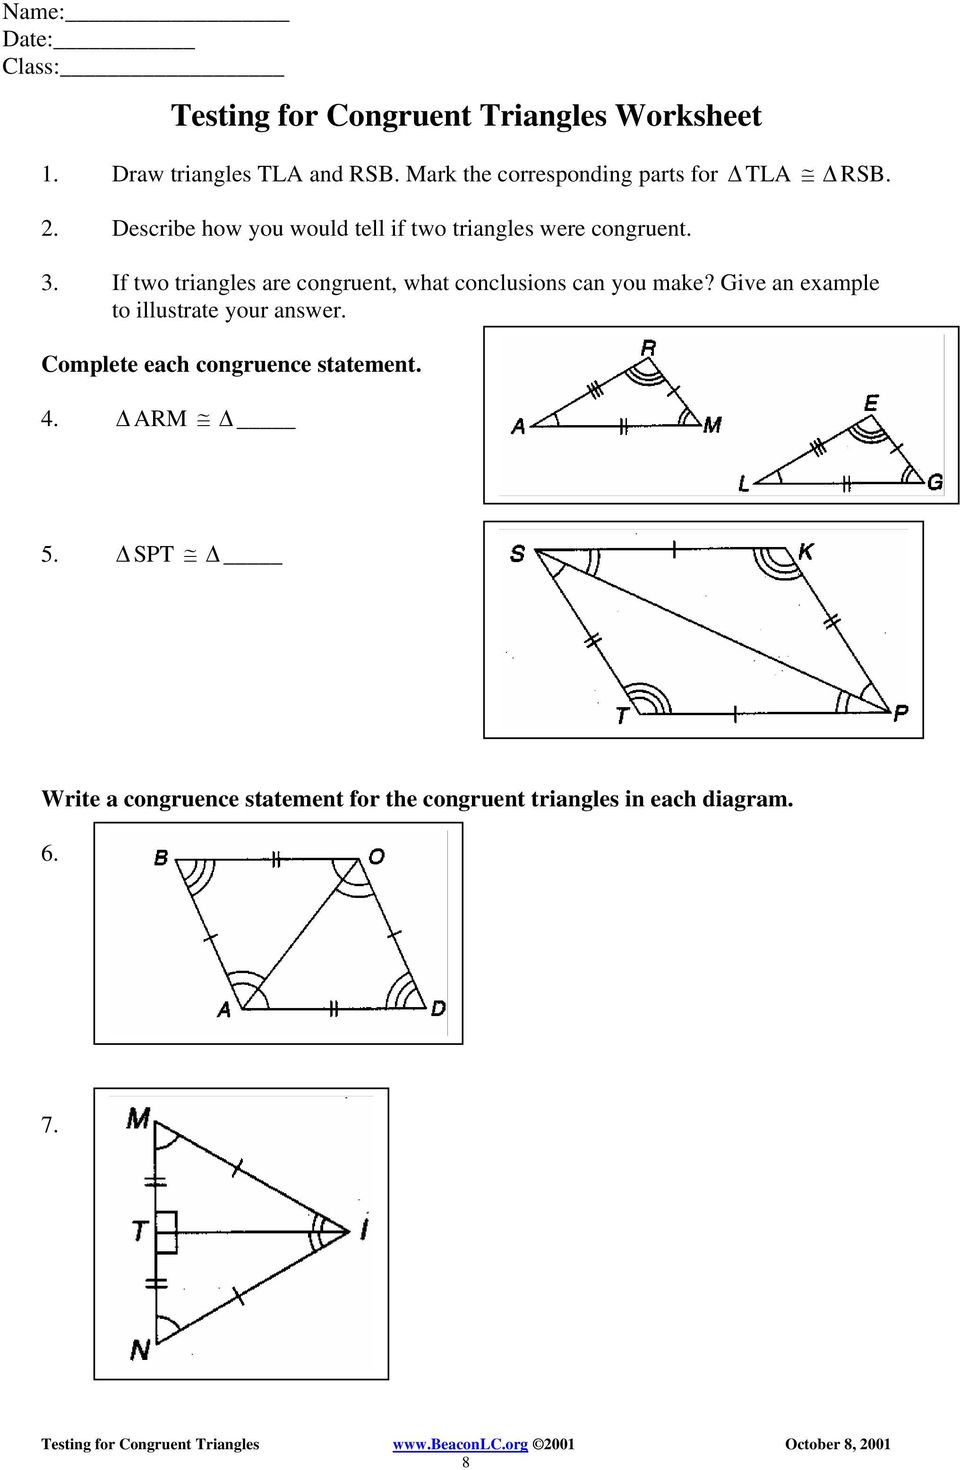 Congruent Triangles Worksheet with Answers